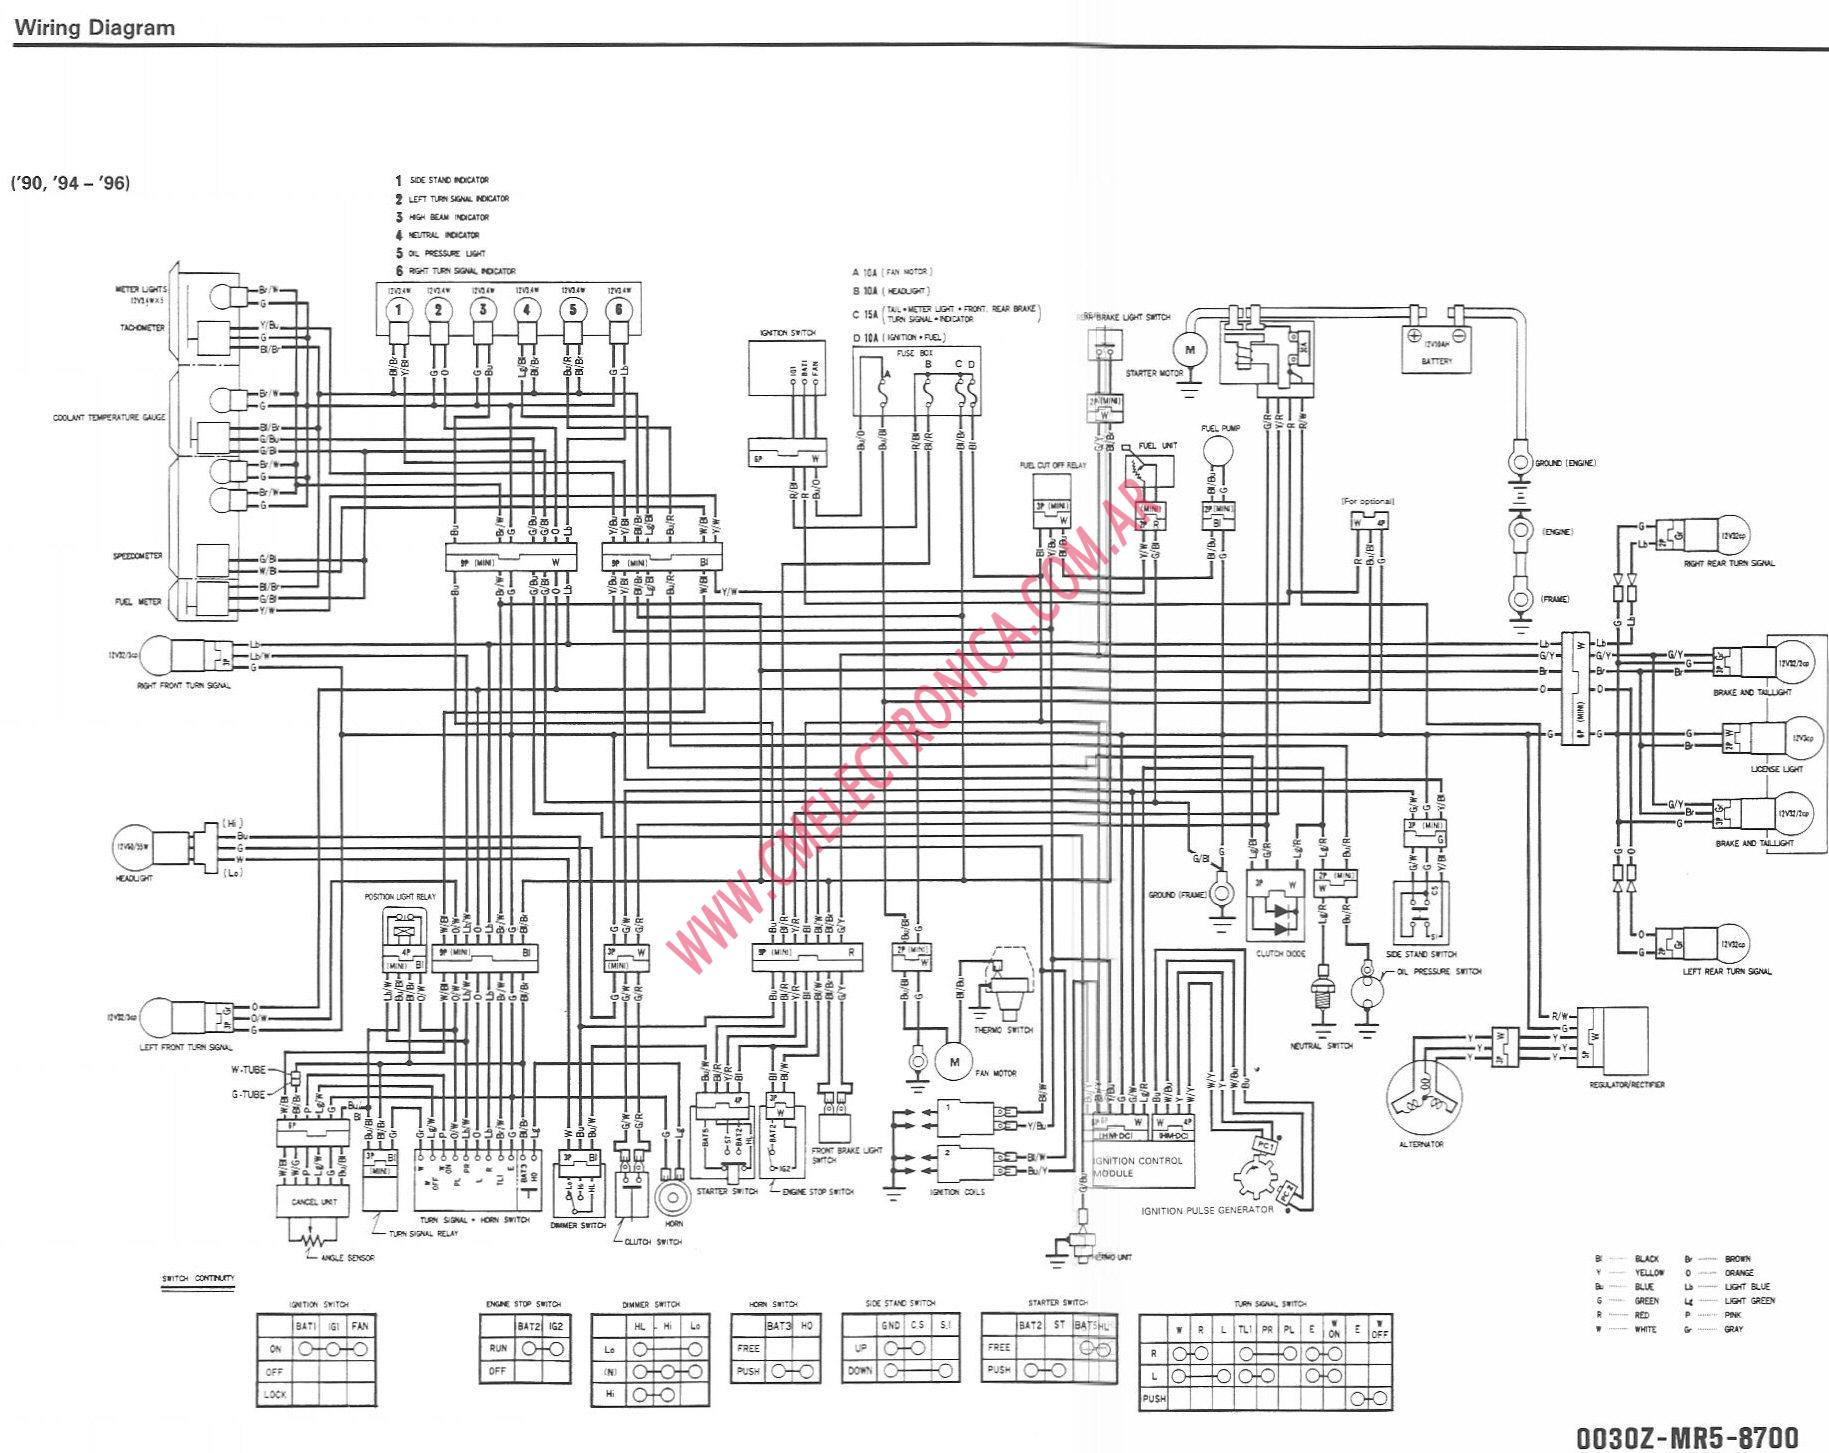 Ebook PDF Honda Cb100 Wiring Diagram